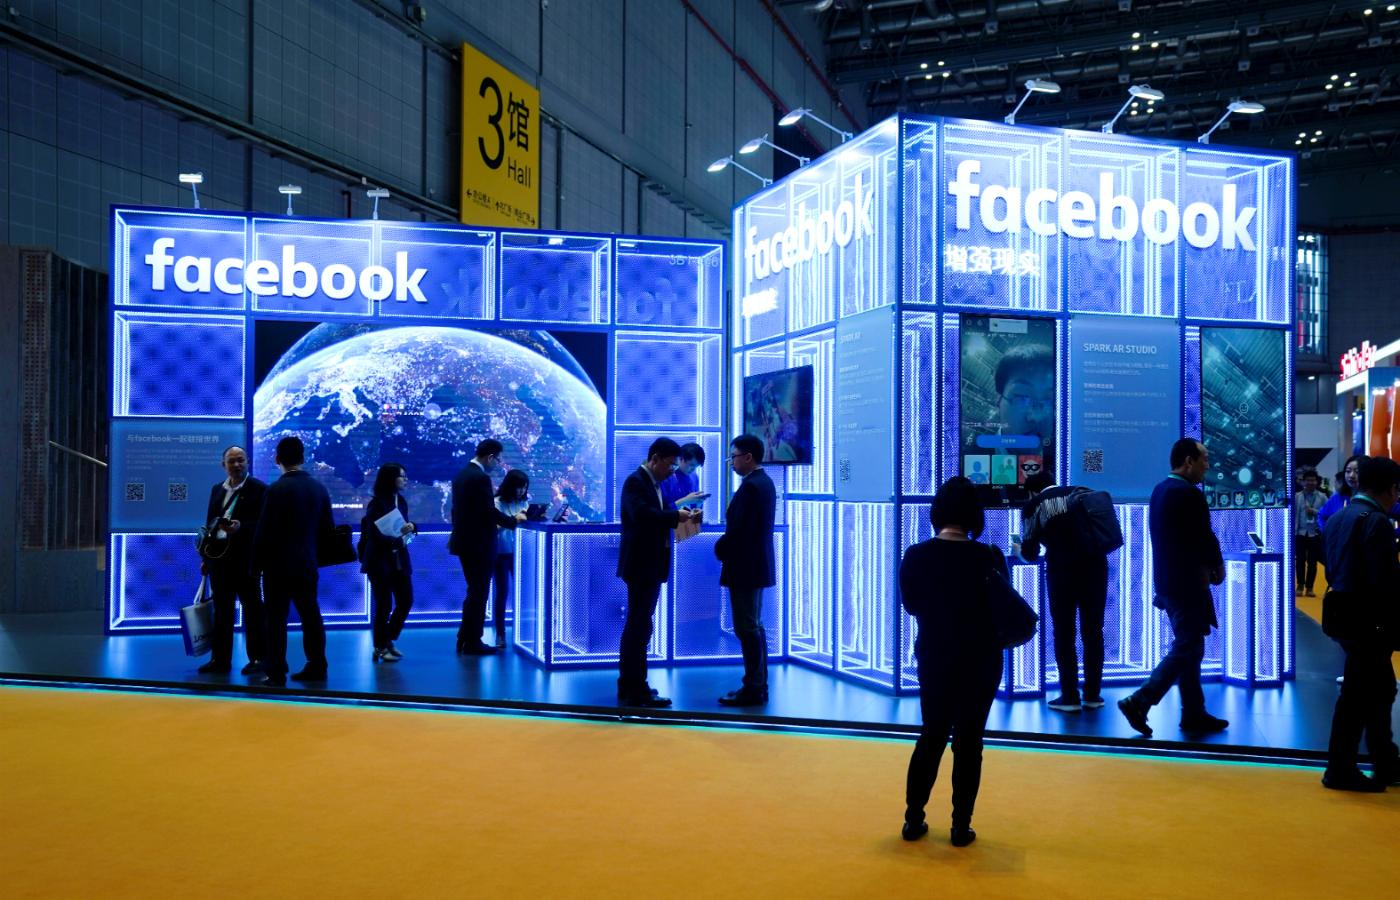 Facebook prezentuje się w ramach China International Import Expo w Szanghaju.